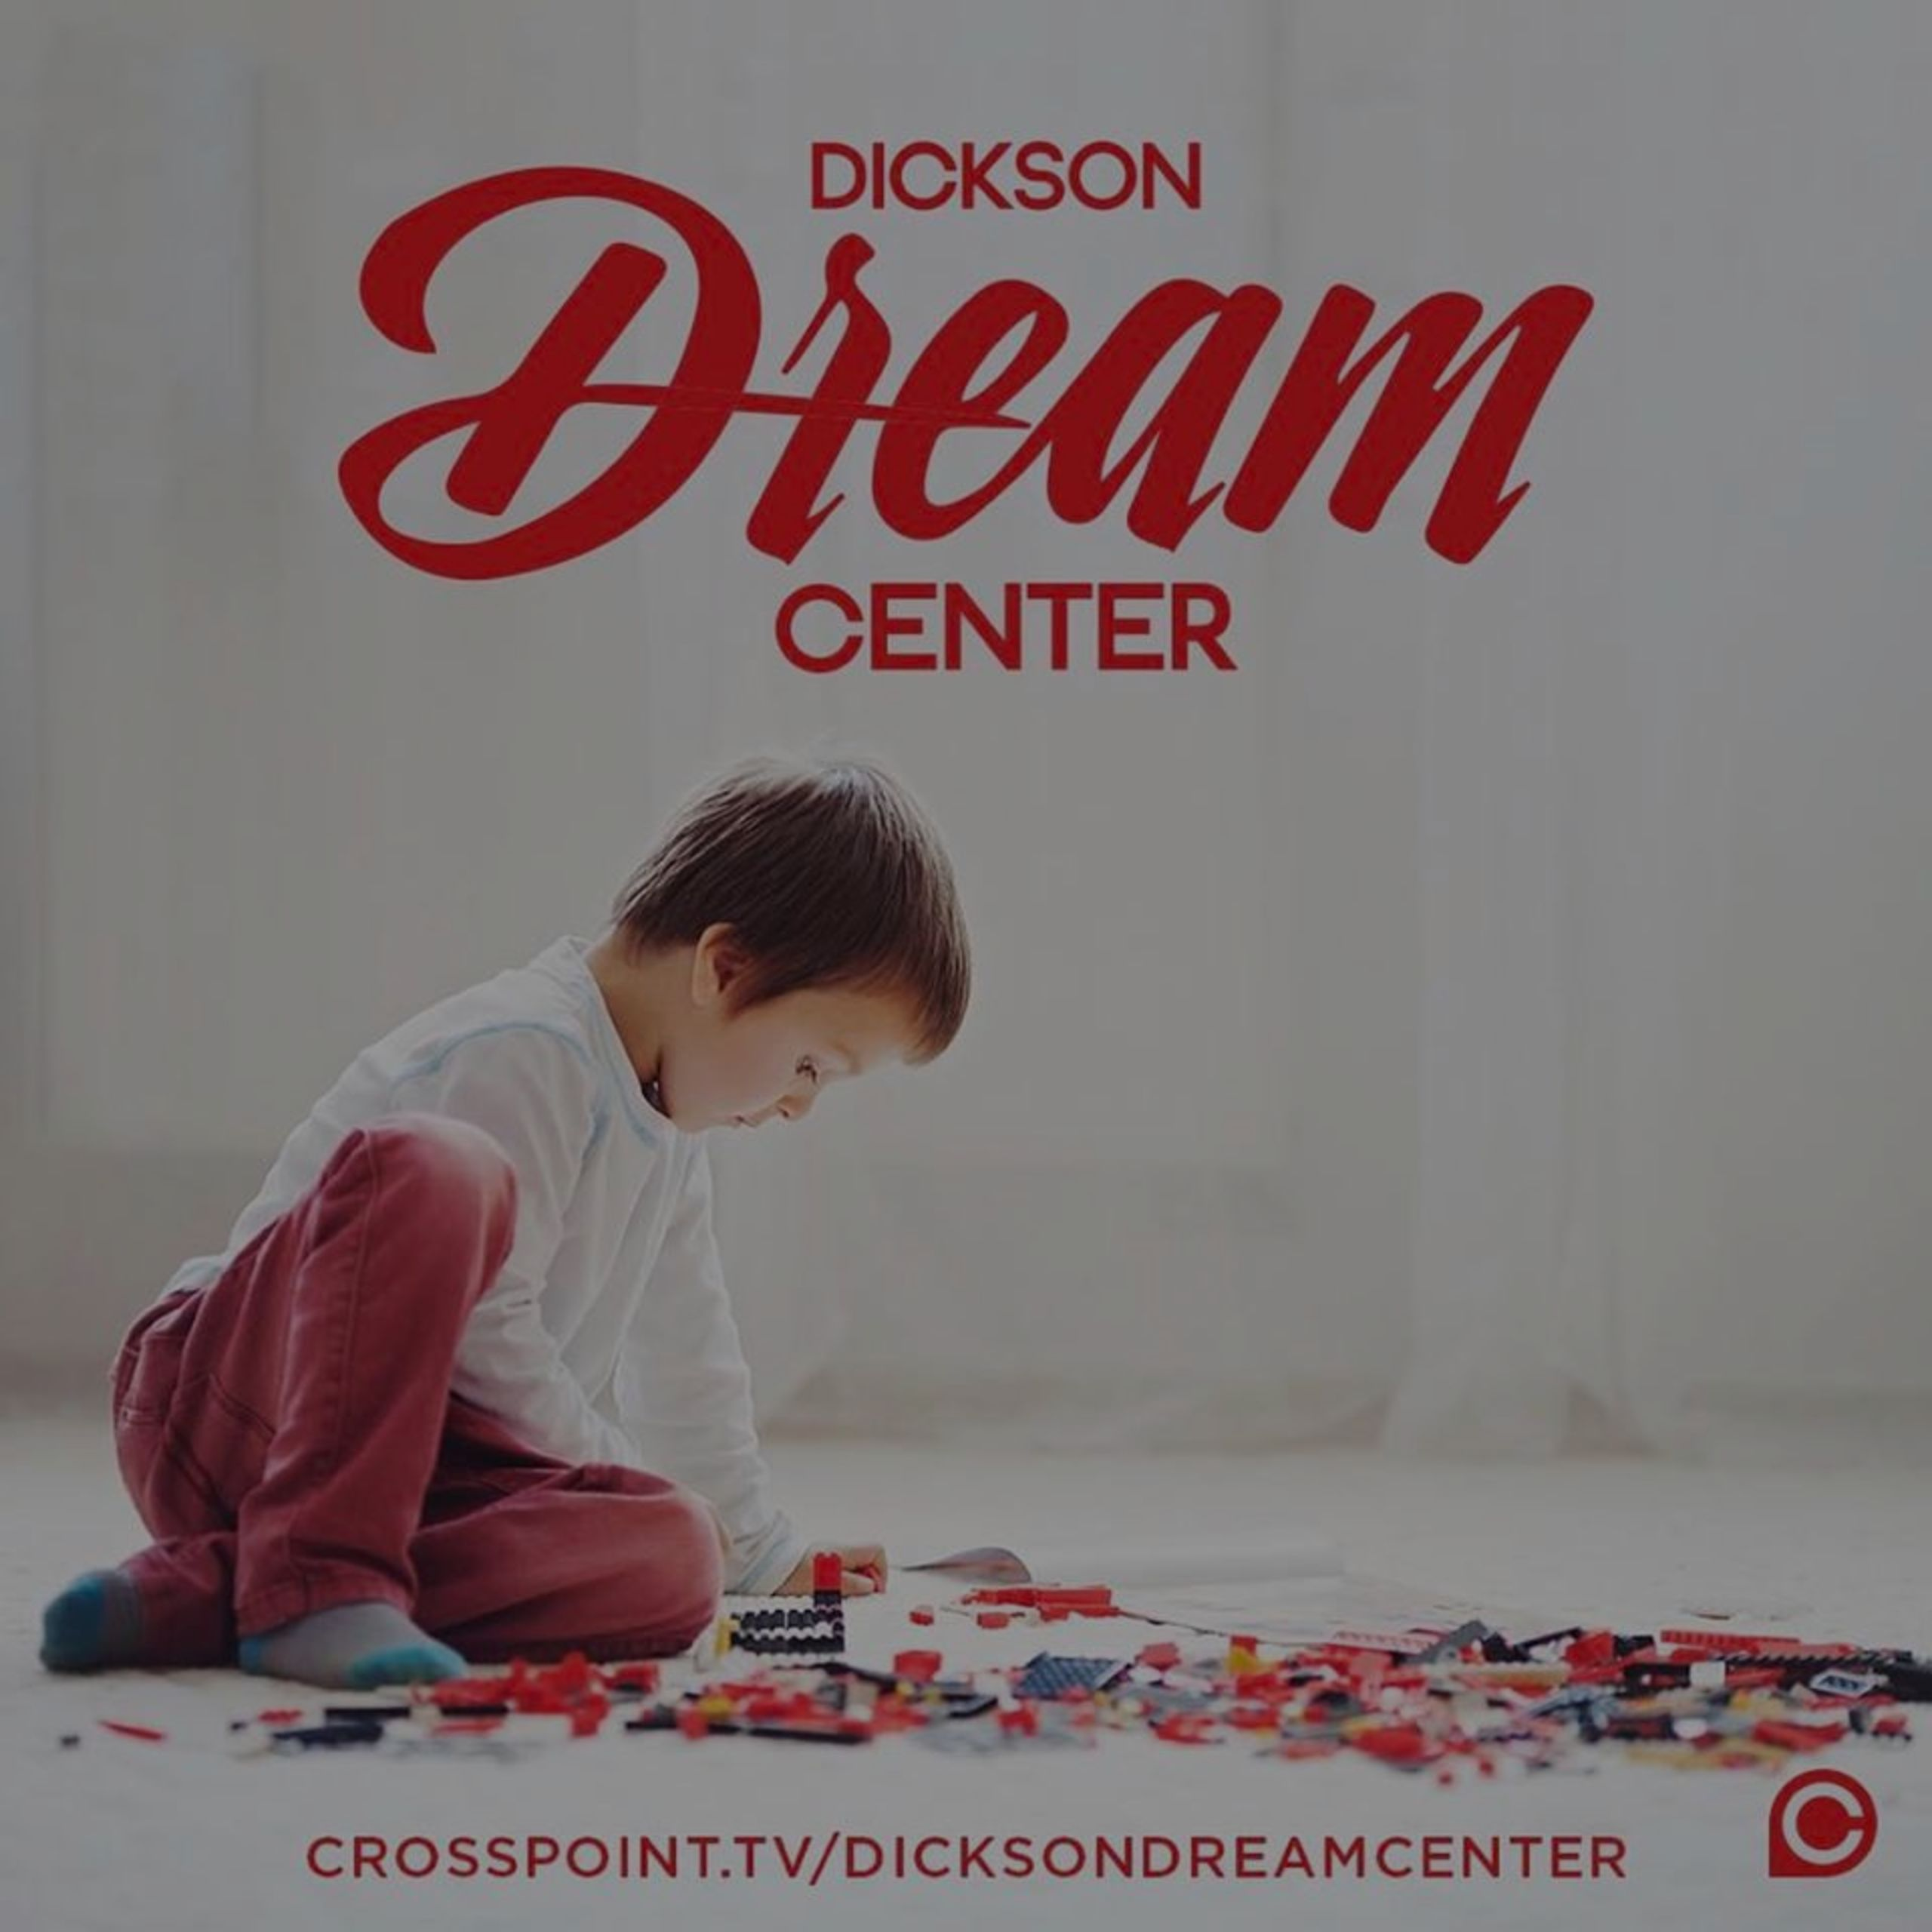 The Dream Center